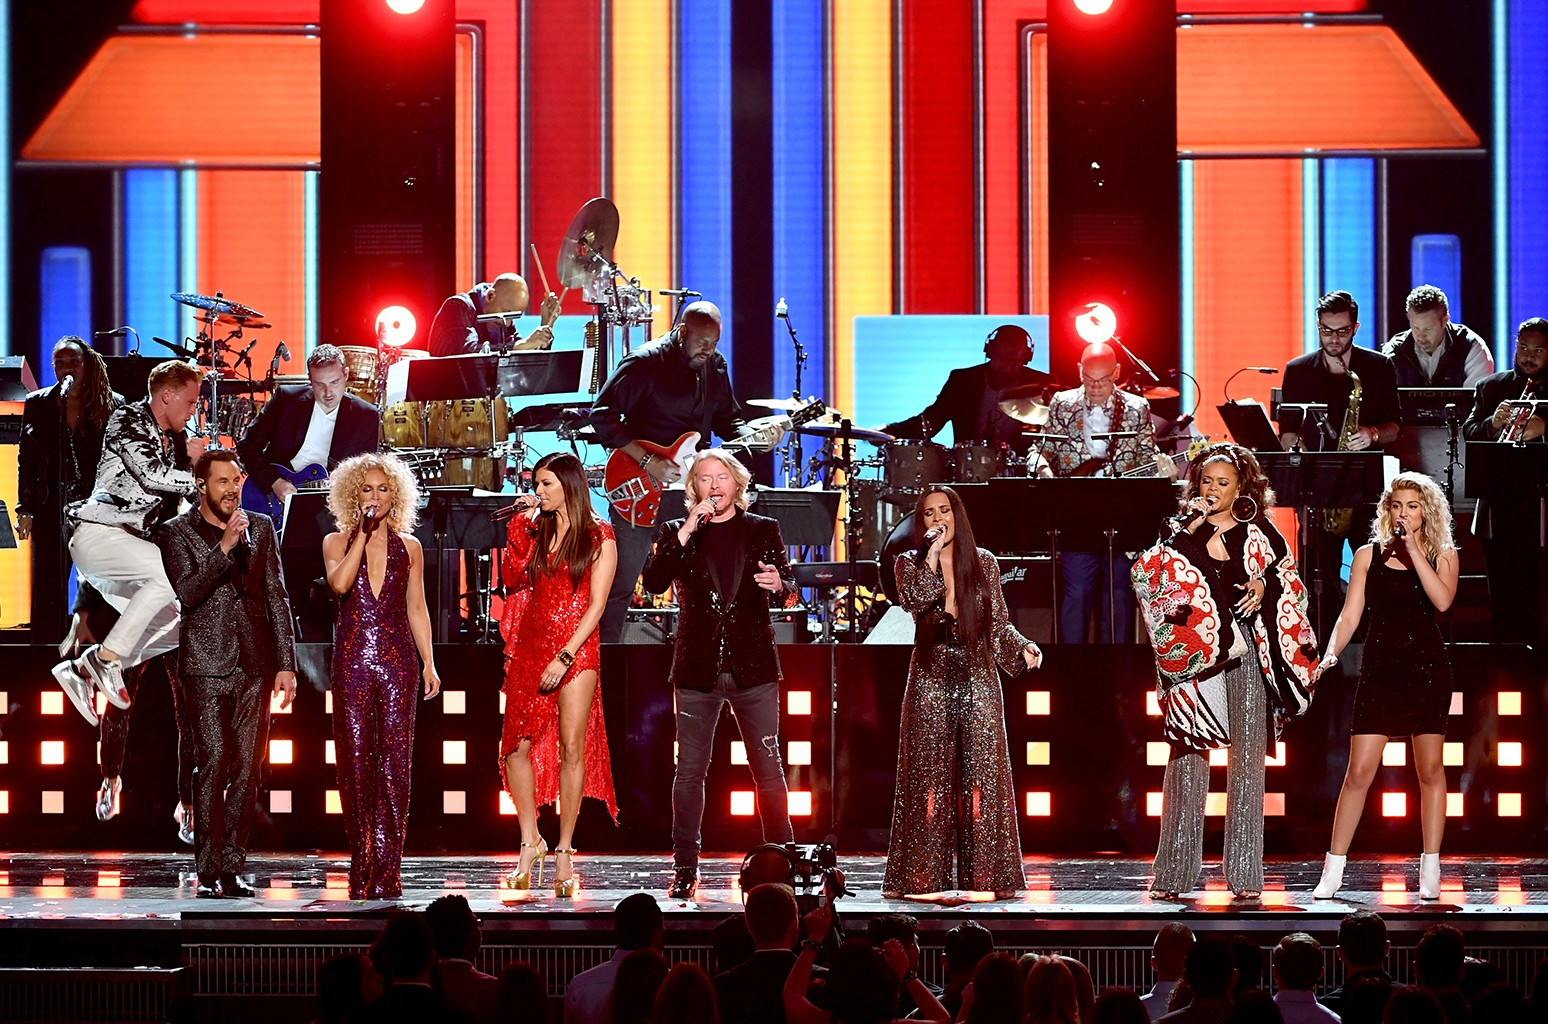 Jimi Westbrook, Kimberly Schlapman, Karen Fairchild, and Philip Sweet of Little Big Town, Demi Lovato, Andra Day, and Tori Kelly perform onstage during The 59th Grammy Awards at Staples Center on Feb. 12, 2017 in Los Angeles.